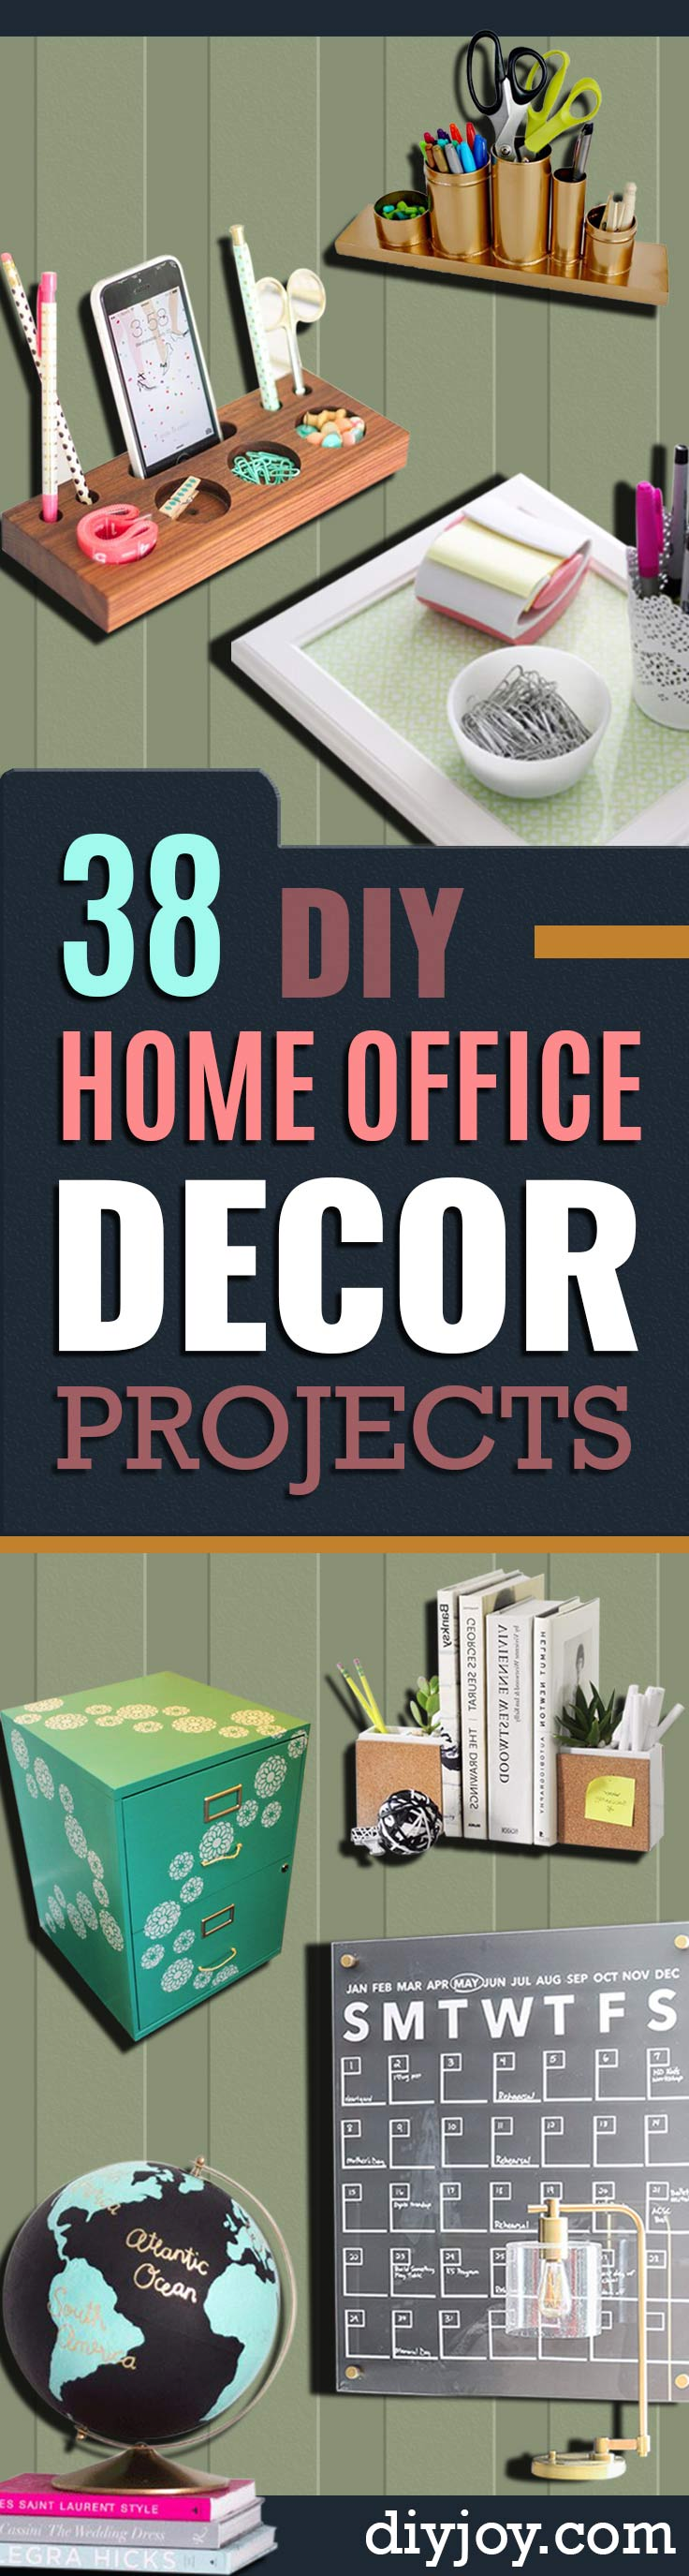 Diy Office Wall Decor Ideas :